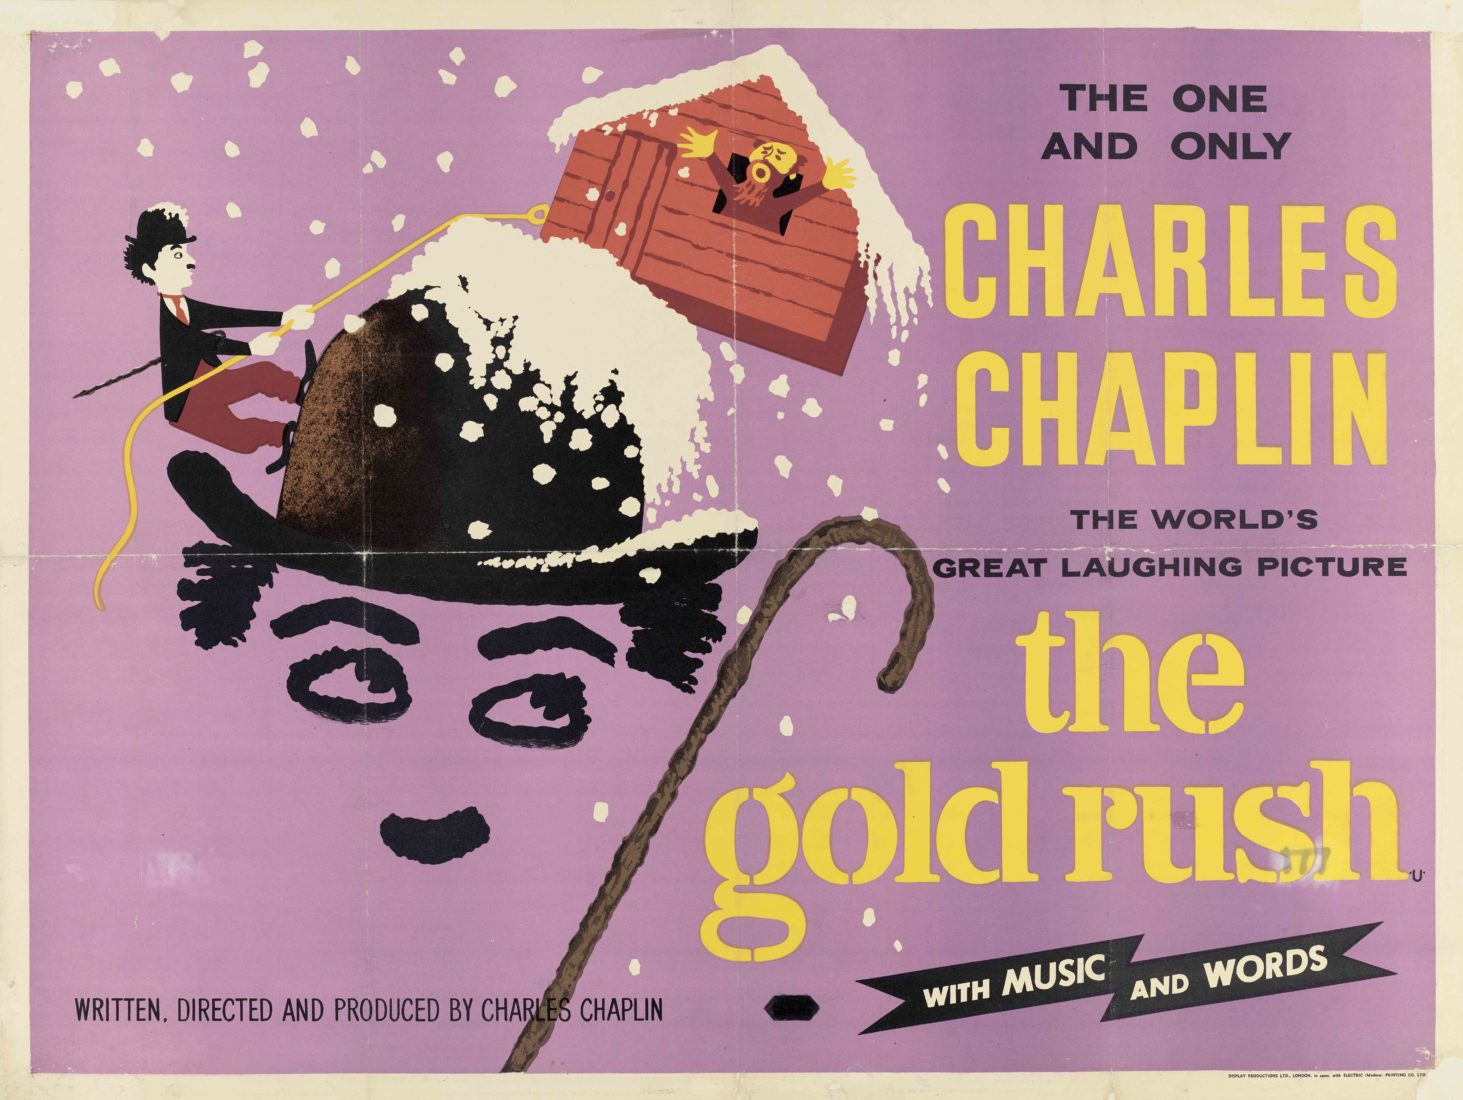 Chaplin's World2020 Music Affiche La Ruée vers l'or